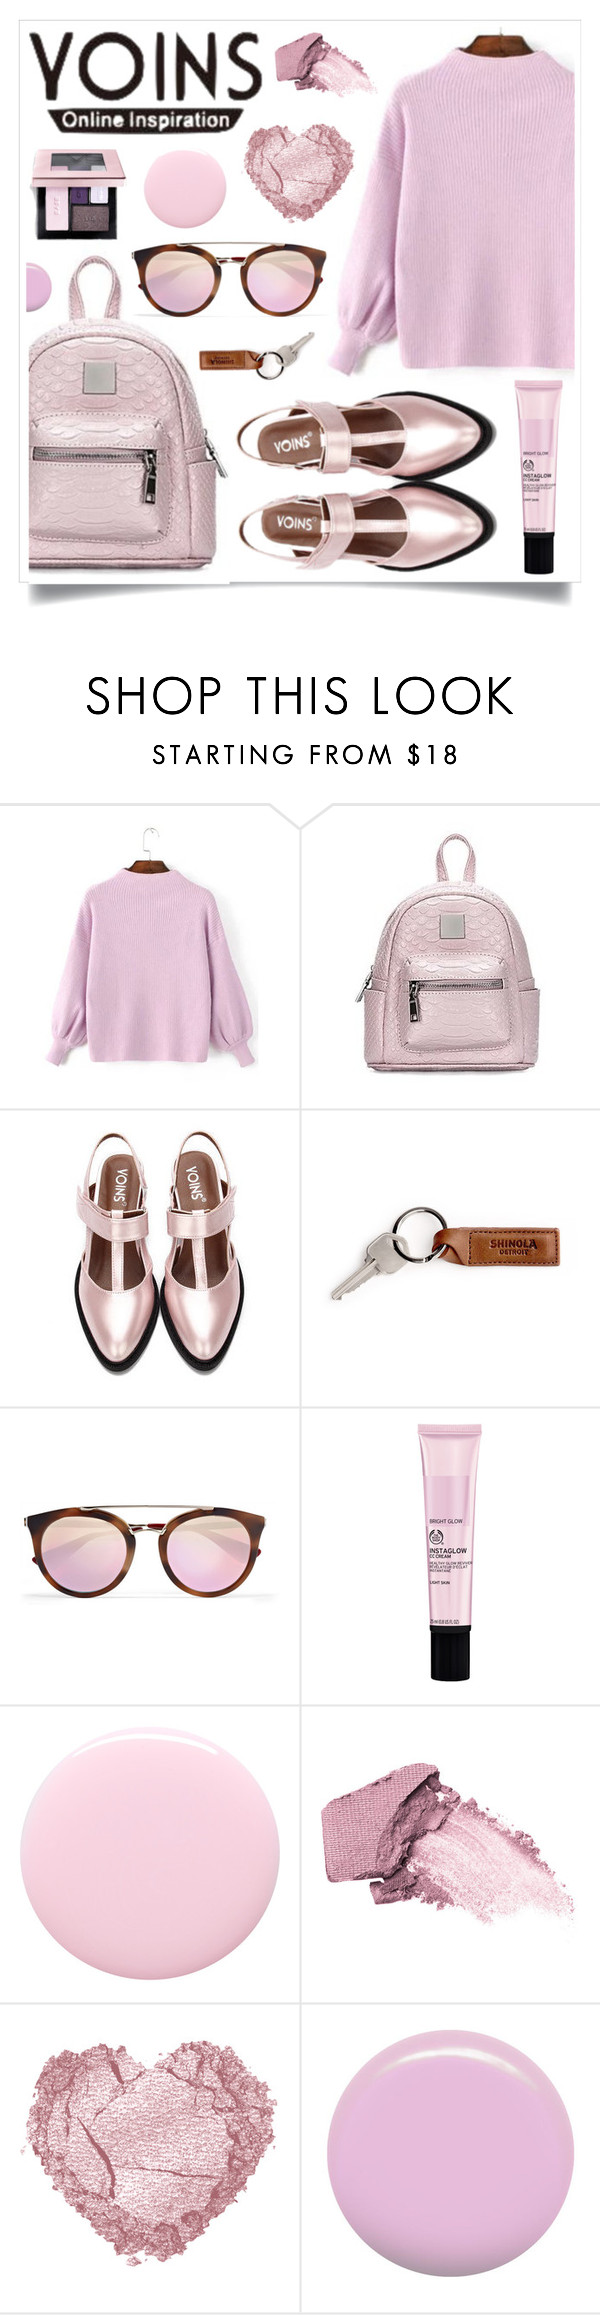 """""""Sweet Dreams (Yoins 1)"""" by racanoki ❤ liked on Polyvore featuring Prada, Nails Inc., Elizabeth Arden, Jin Soon, yoinscollection and loveyoins"""